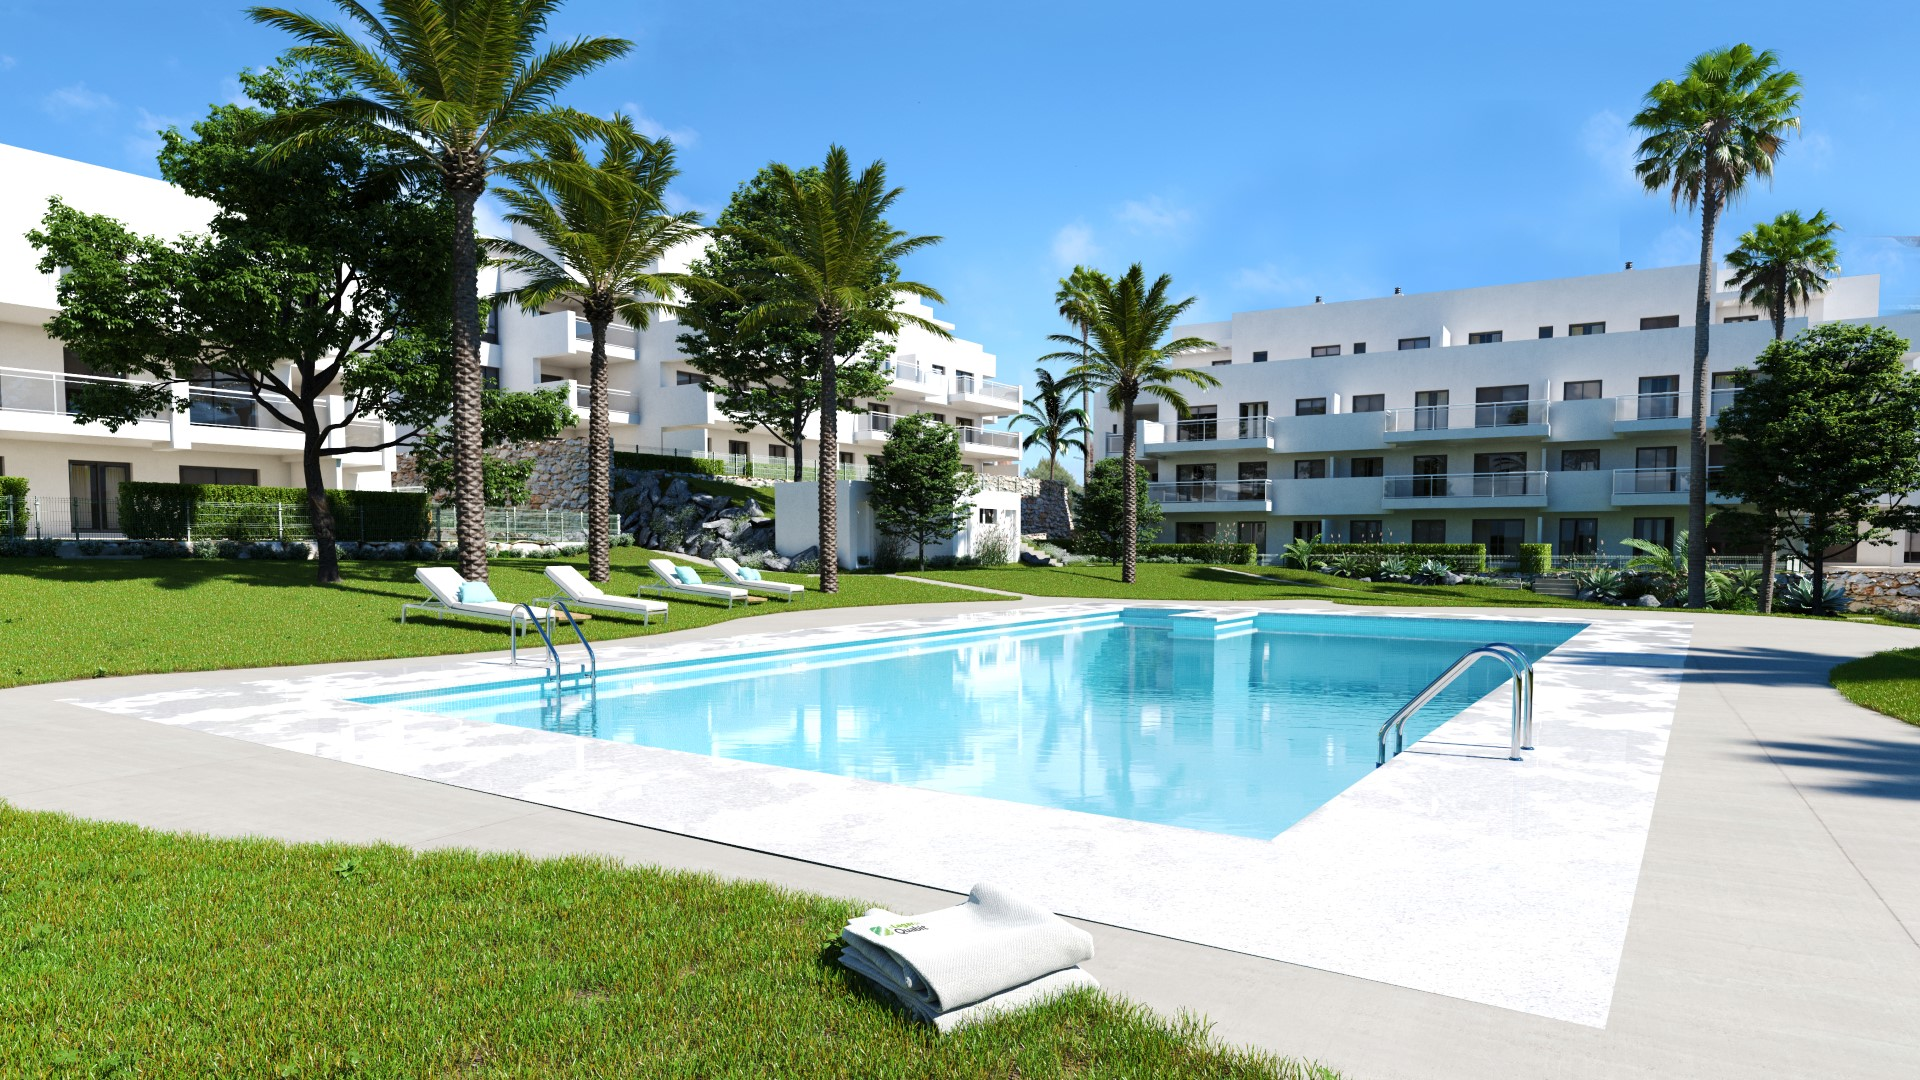 Apartments in La Cala de Mijas MA5859723